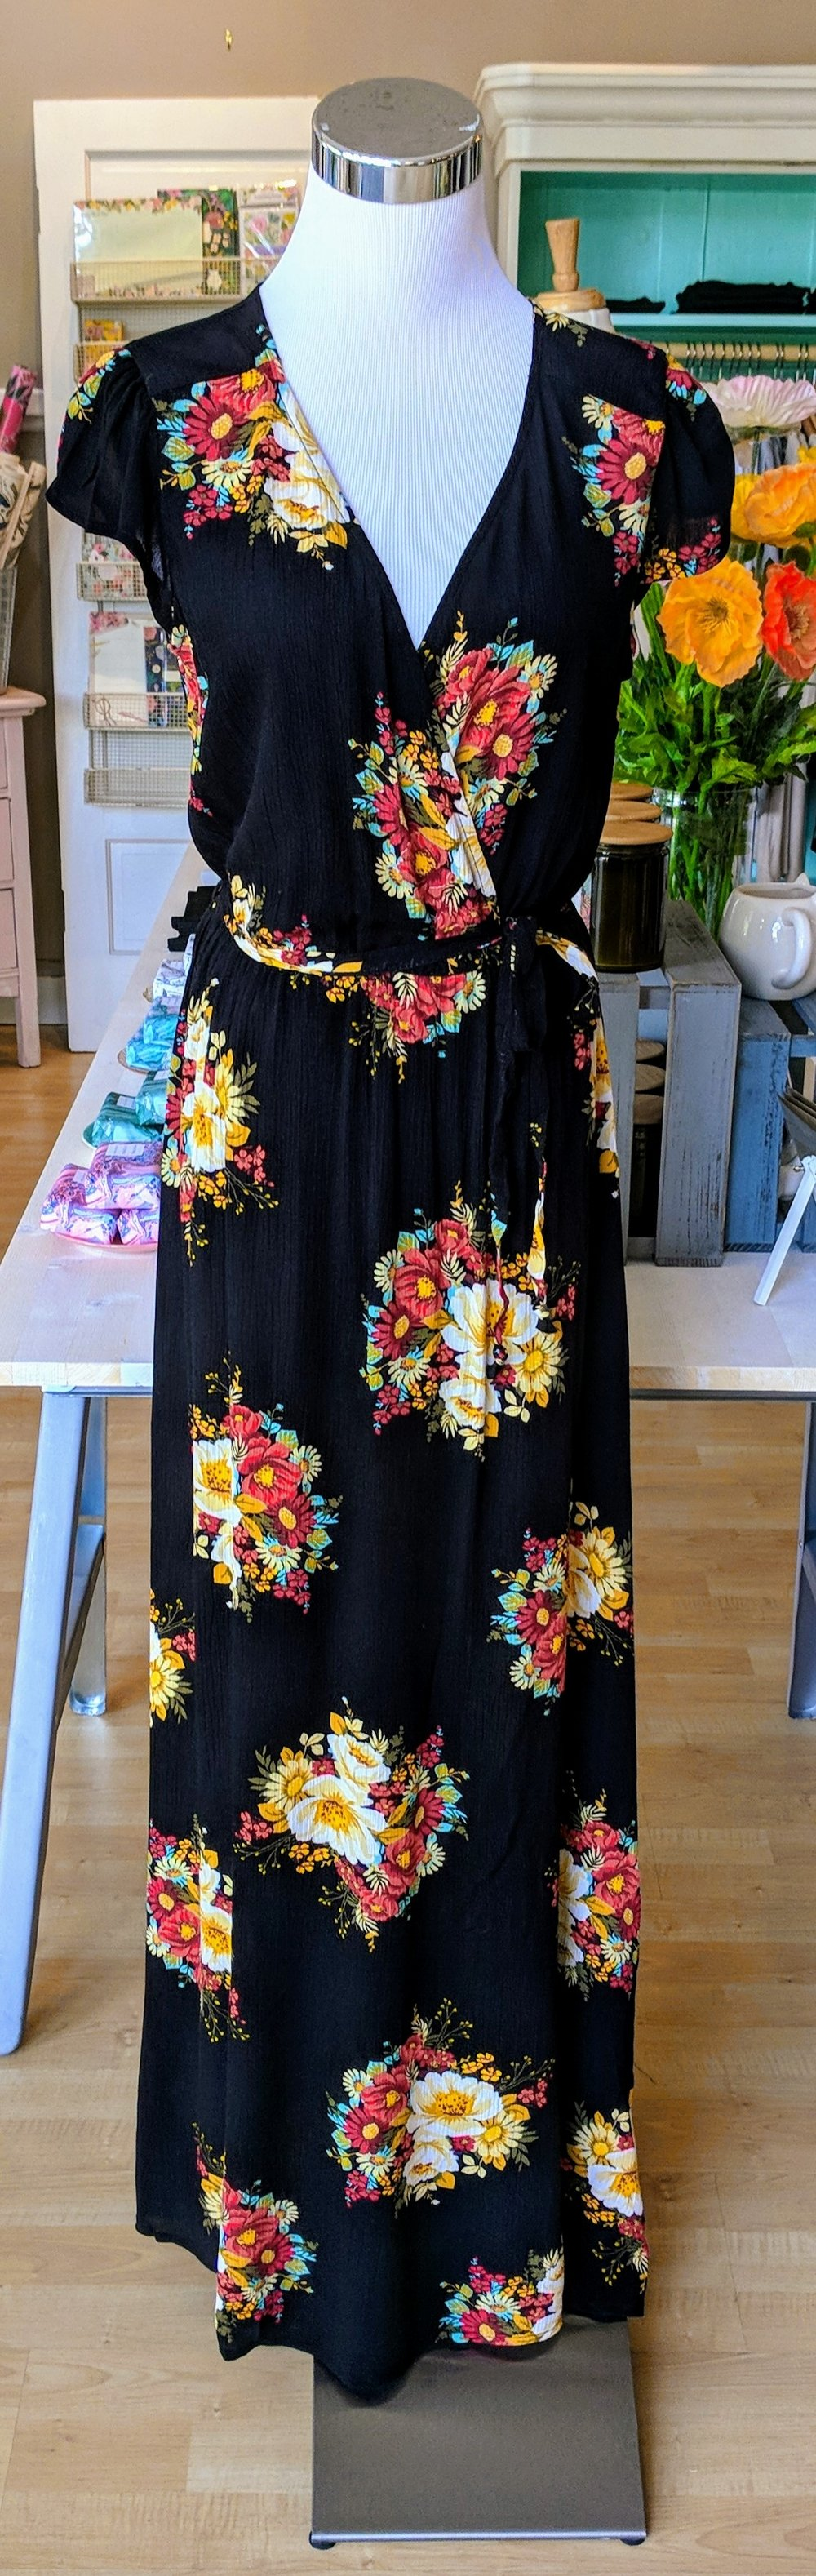 Black floral pattern maxi wrap dress with tie waist.